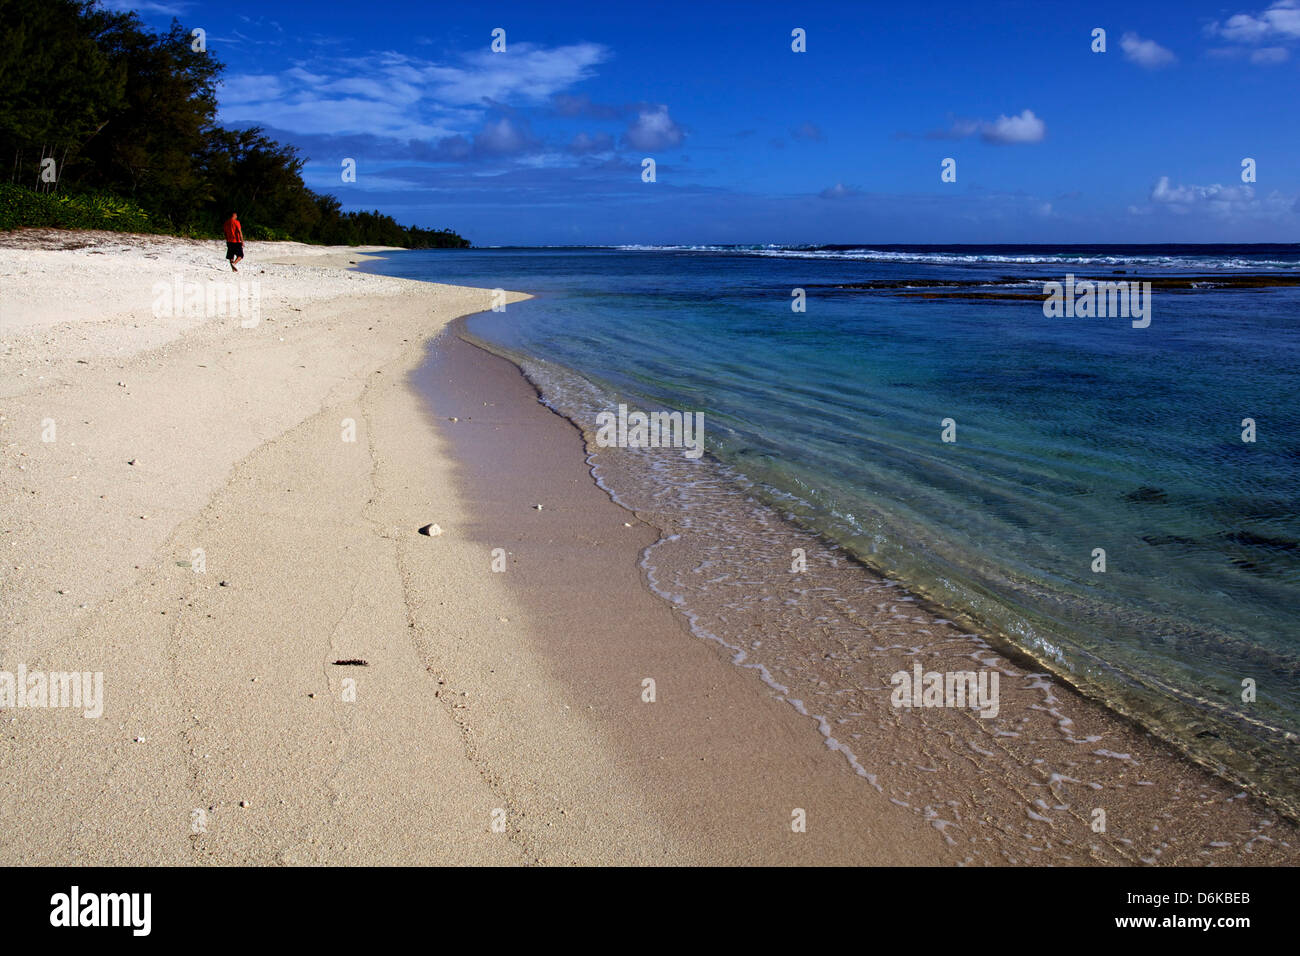 The Trou du Souffleur Beach on the west coast of Rurutu, Austral Islands, French Polynesia, Pacific Islands, Pacific - Stock Image